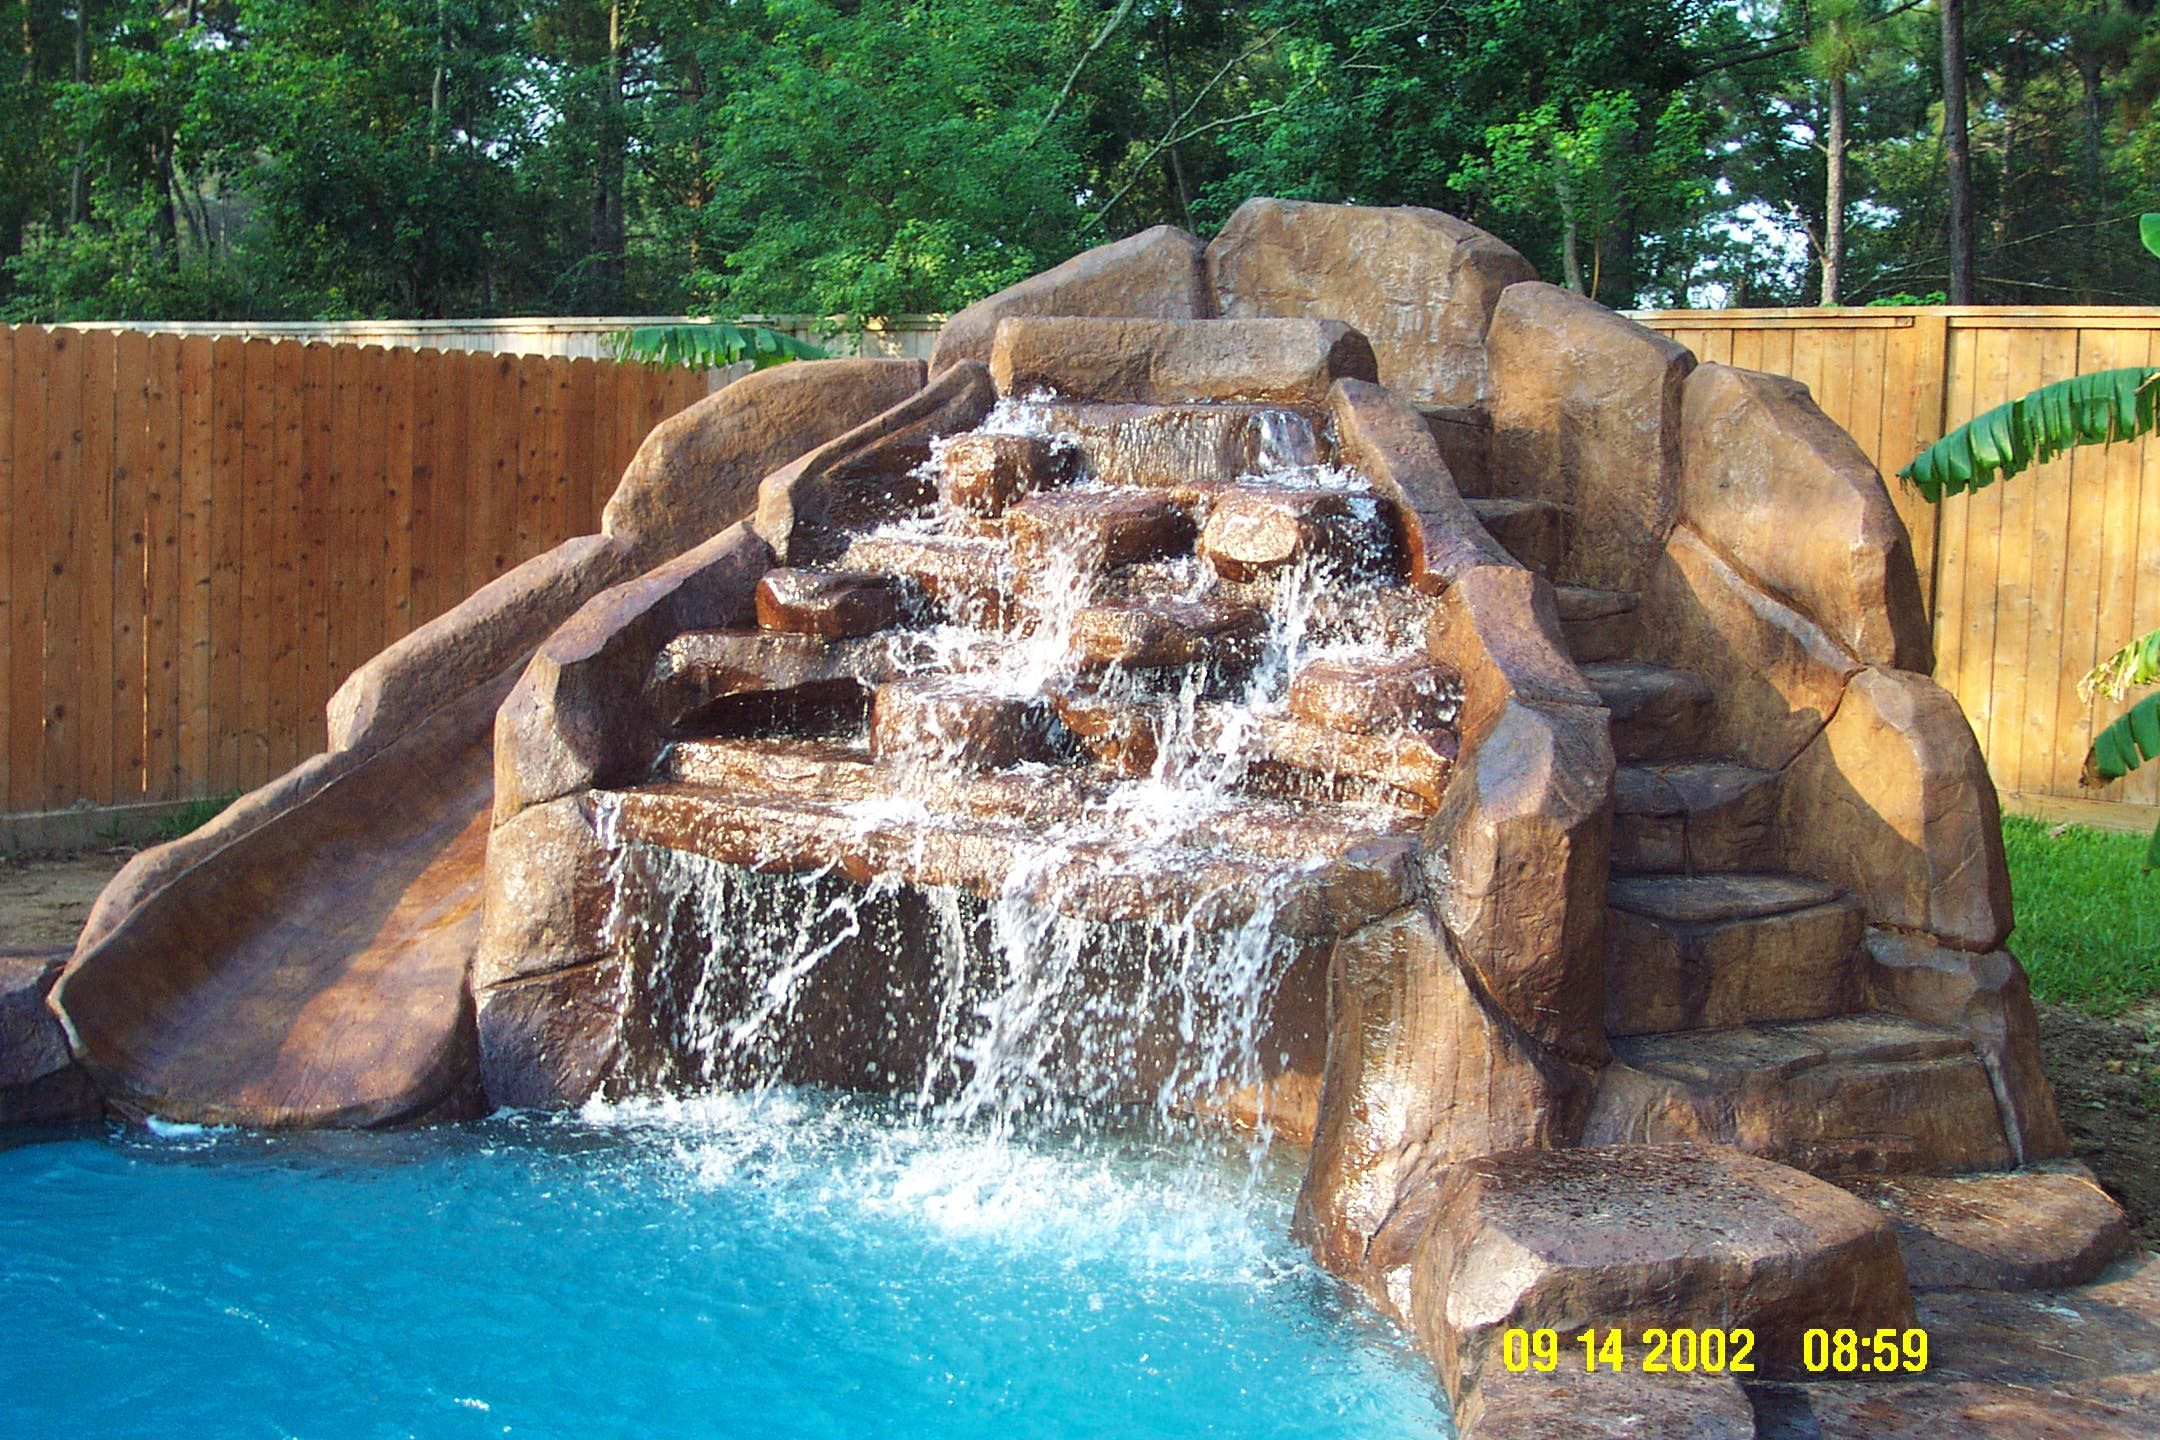 Here S A Custom Pool Slide And Waterfall That You Can Use As Inspiration For Your Own Backyard Designs